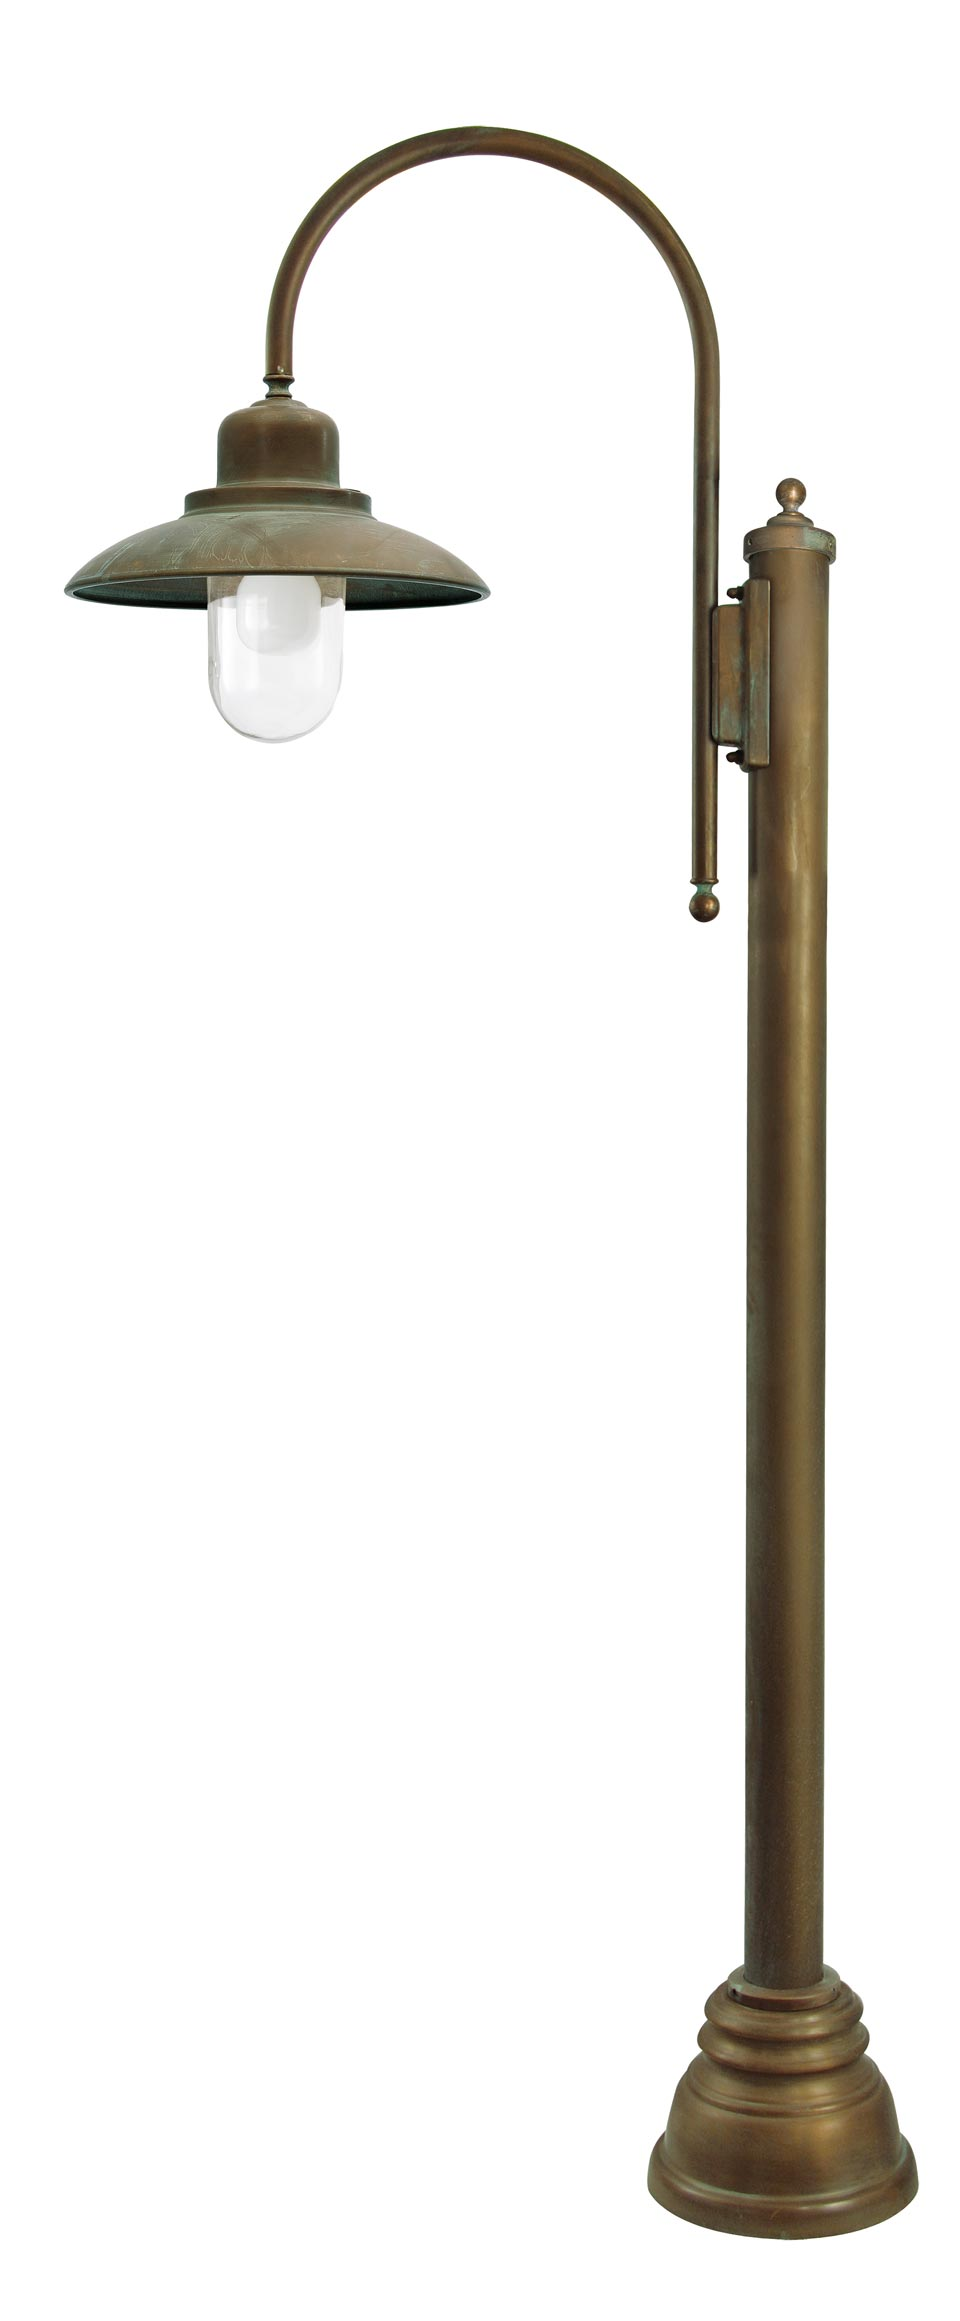 Patio Lamp Post In Aged Brass Country Style Ref 20040032